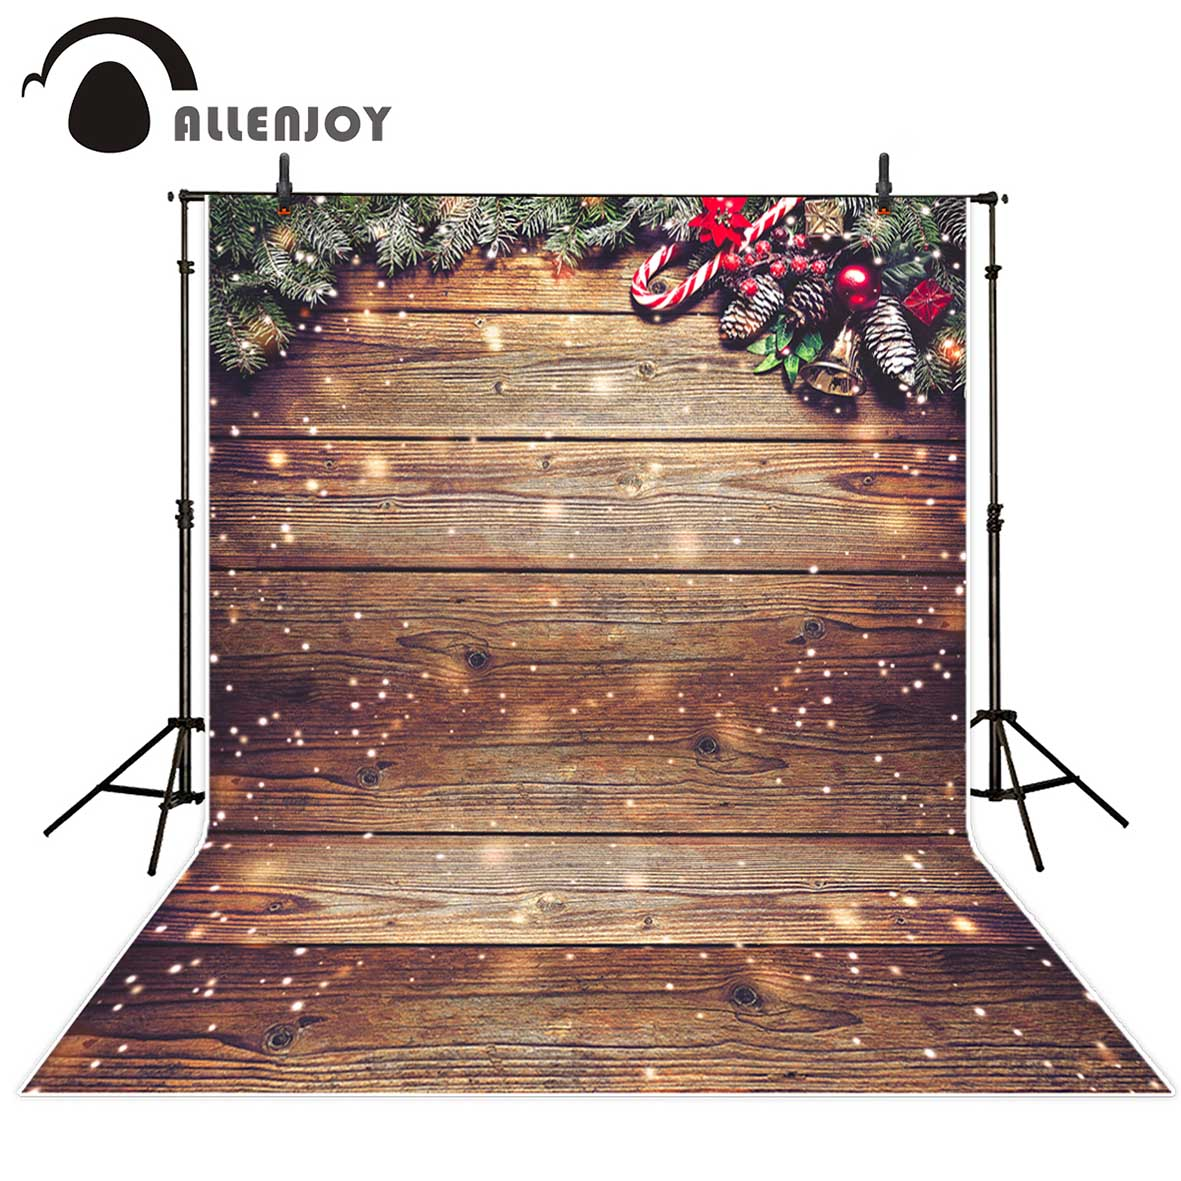 Allenjoy new photography background Christmas bokeh wood crutch leaves backdrop photocall photographic professional